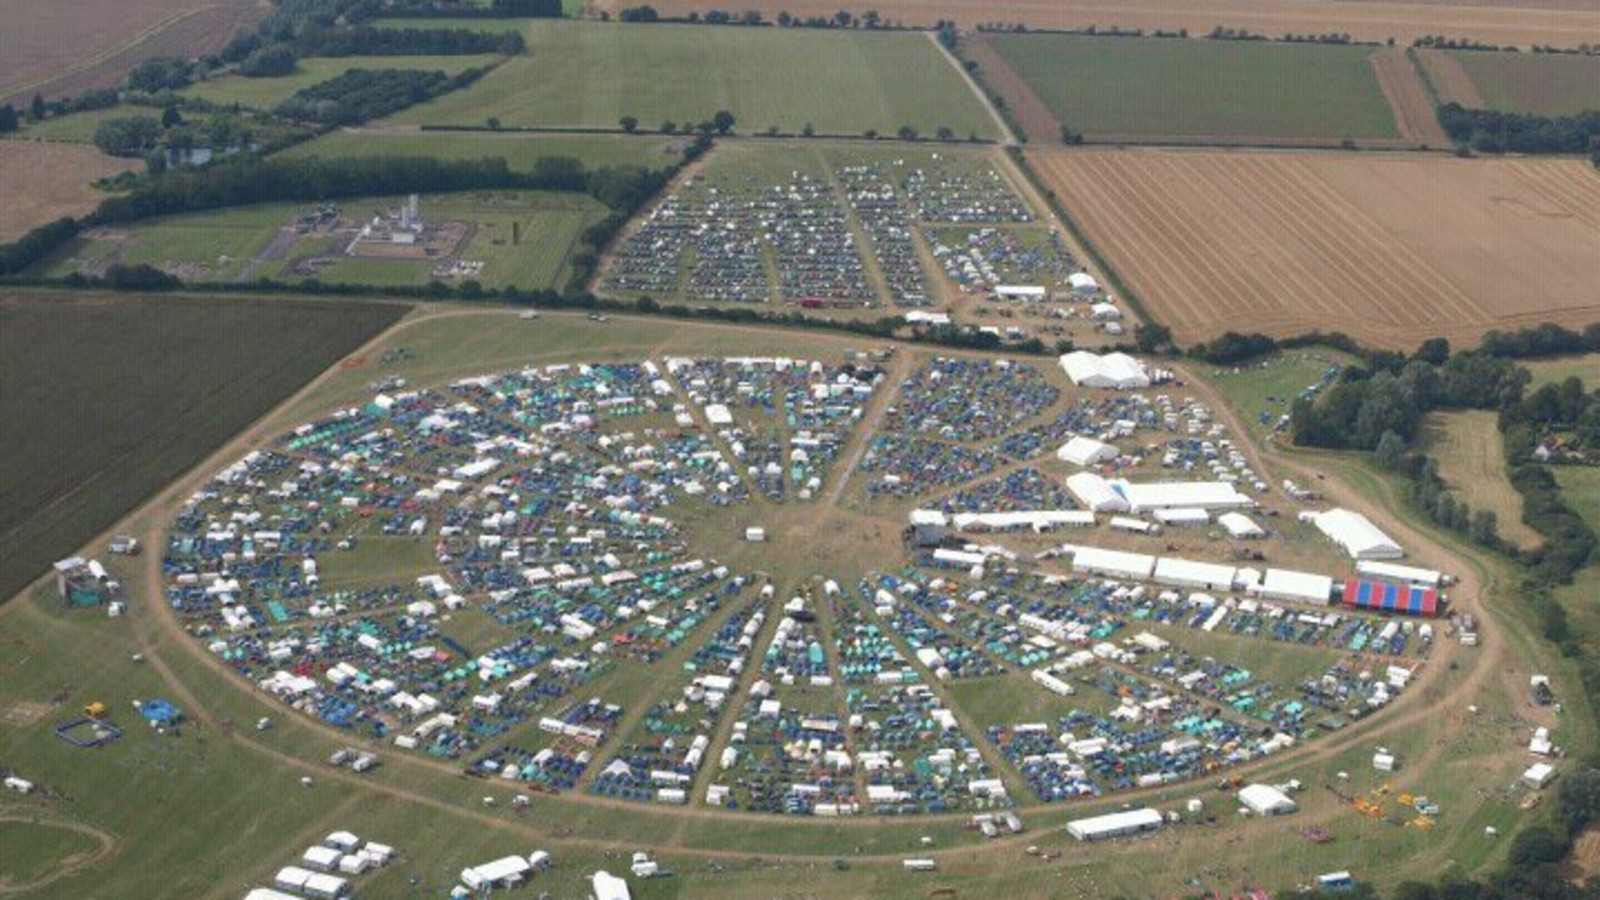 Essex Jamboree from the air